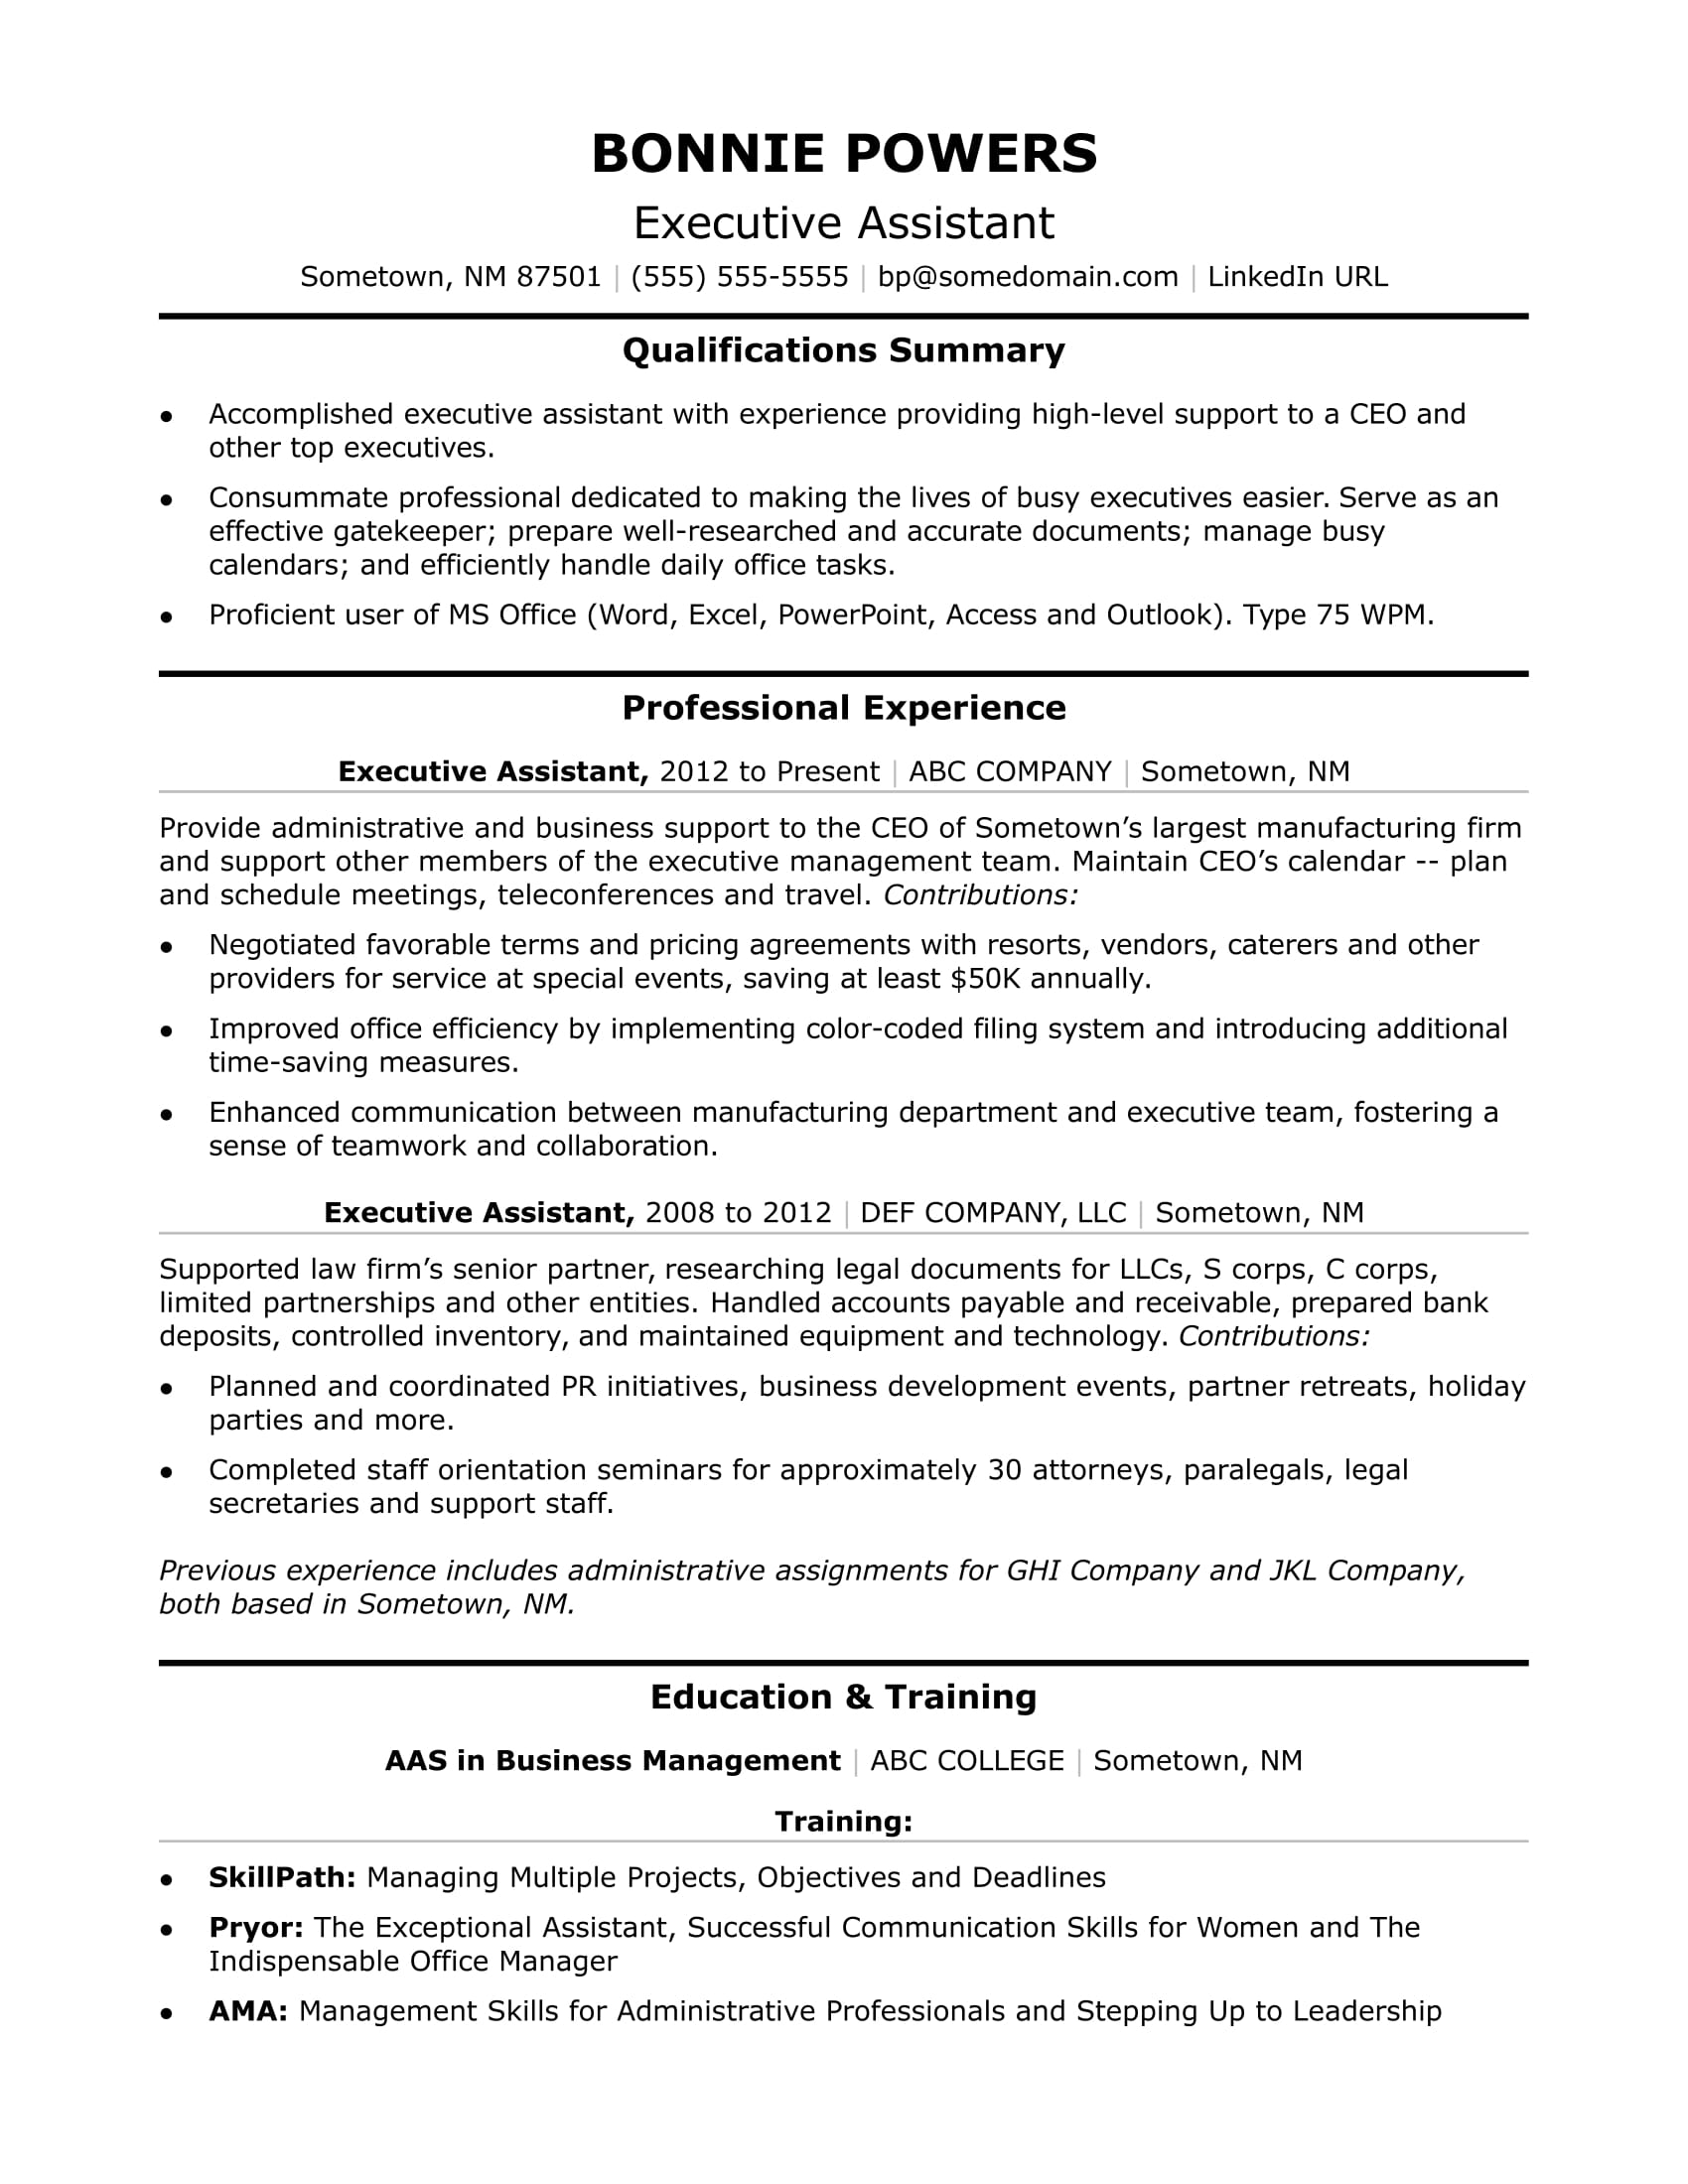 Executive Administrative Assistant Resume Sample  Ceo Resume Template